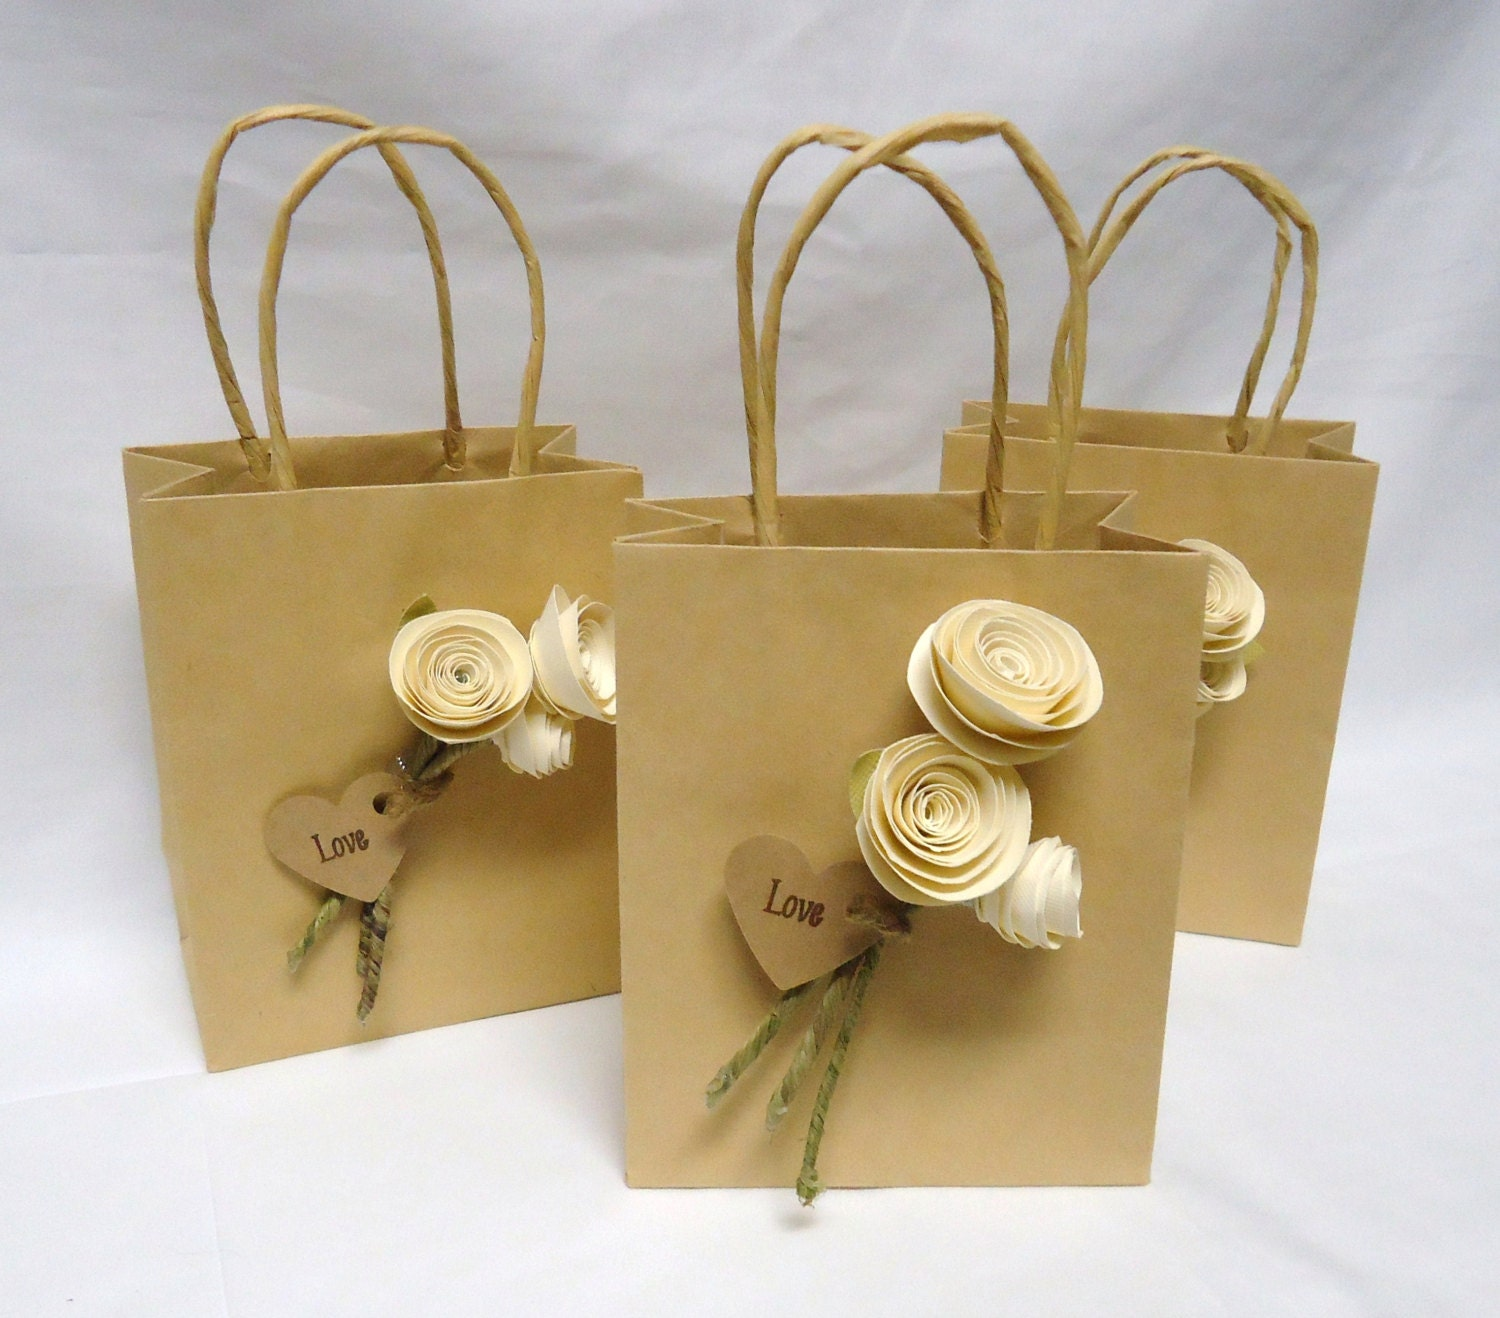 Ideas For Wedding Favor Bags : Wedding favor bags. wedding gift bags. gift bags. Paper rose wedding ...